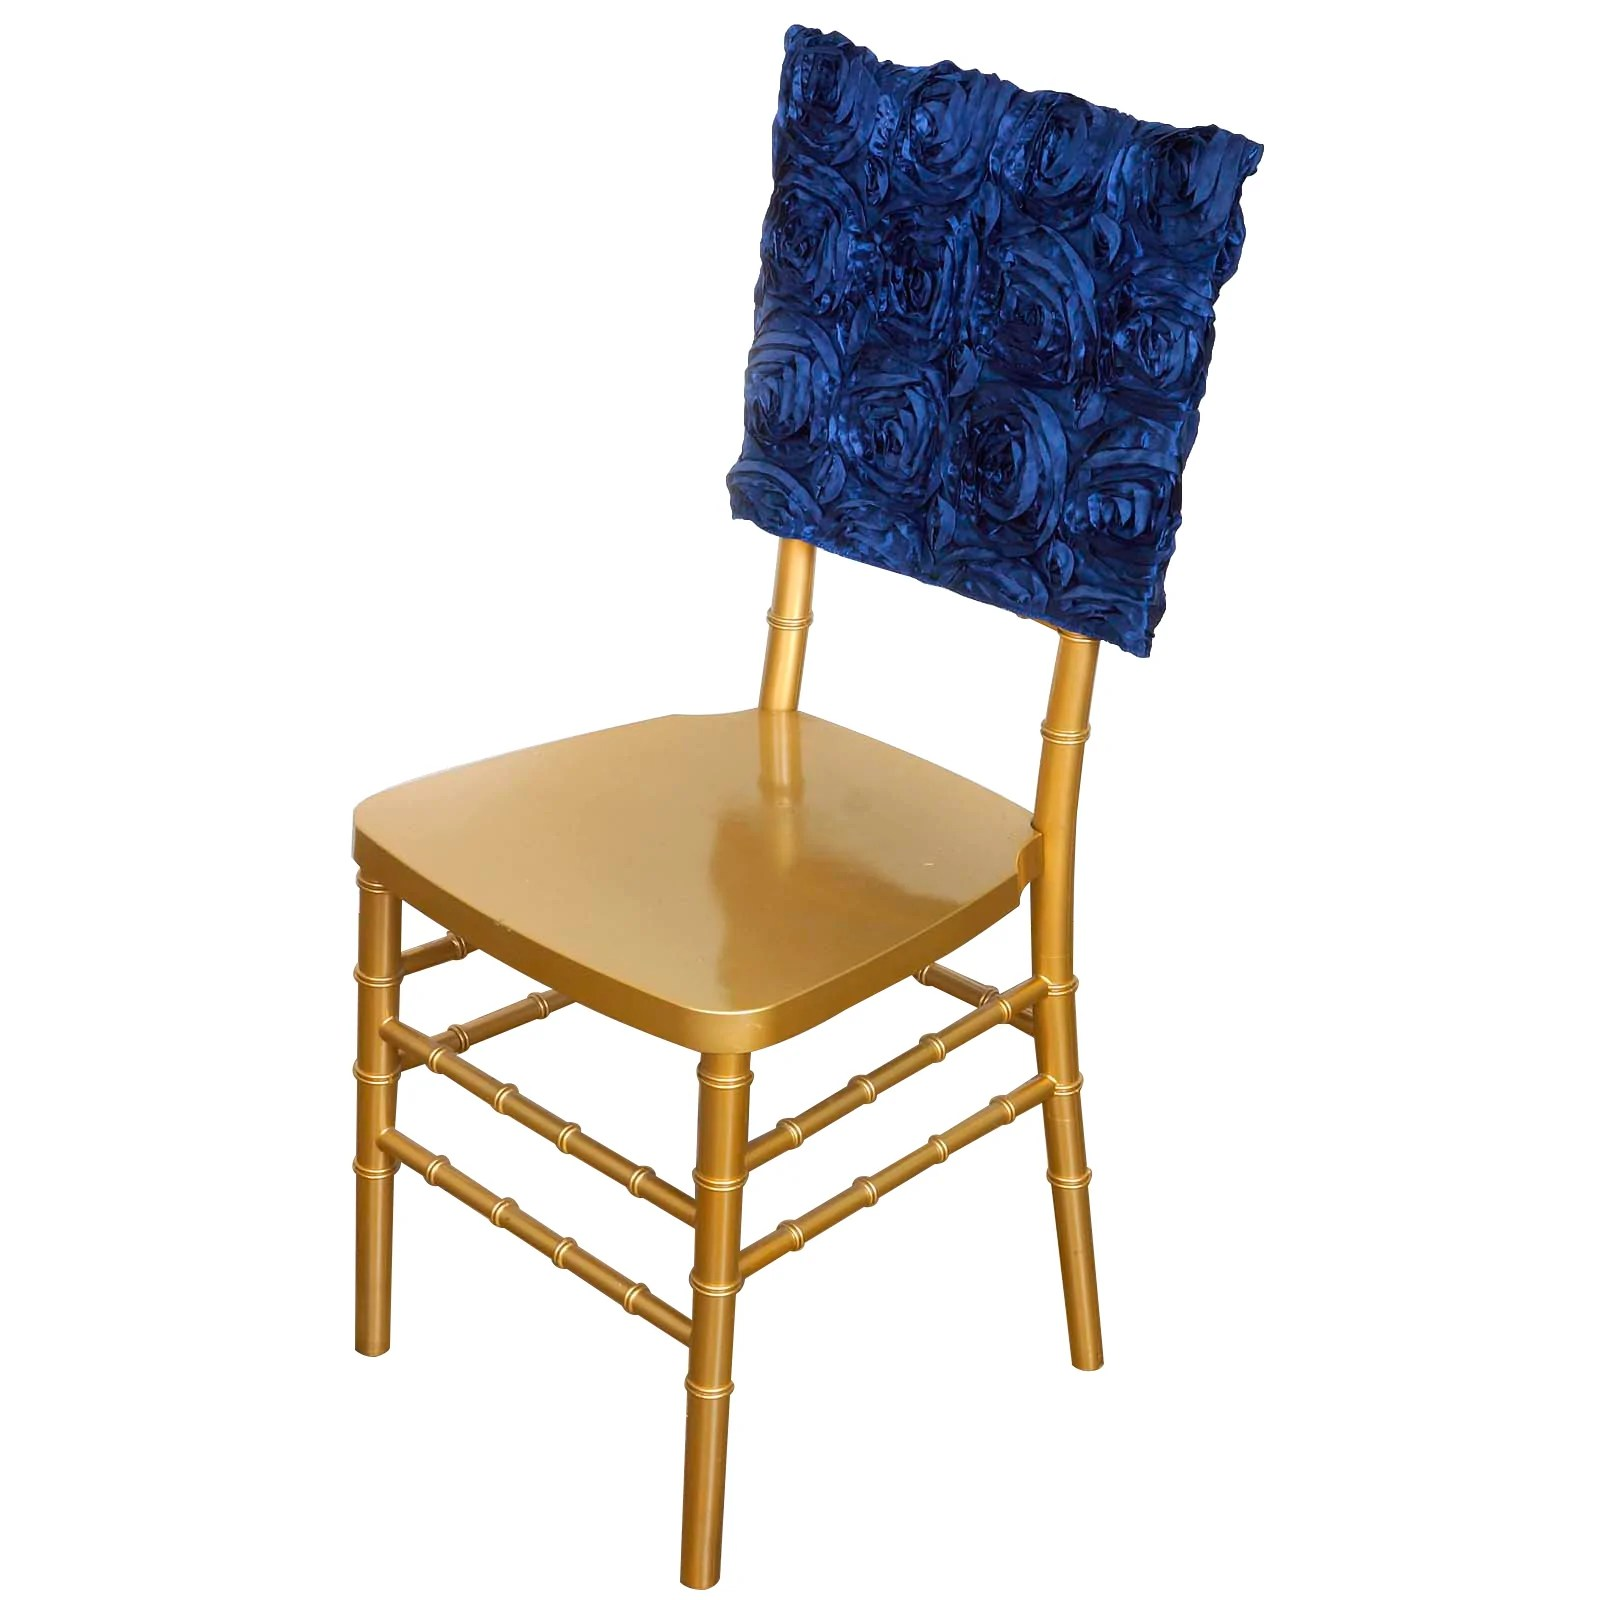 green chair covers for sale rooms to go recliner chairs 16 quot navy blue rosette chiavari caps cover